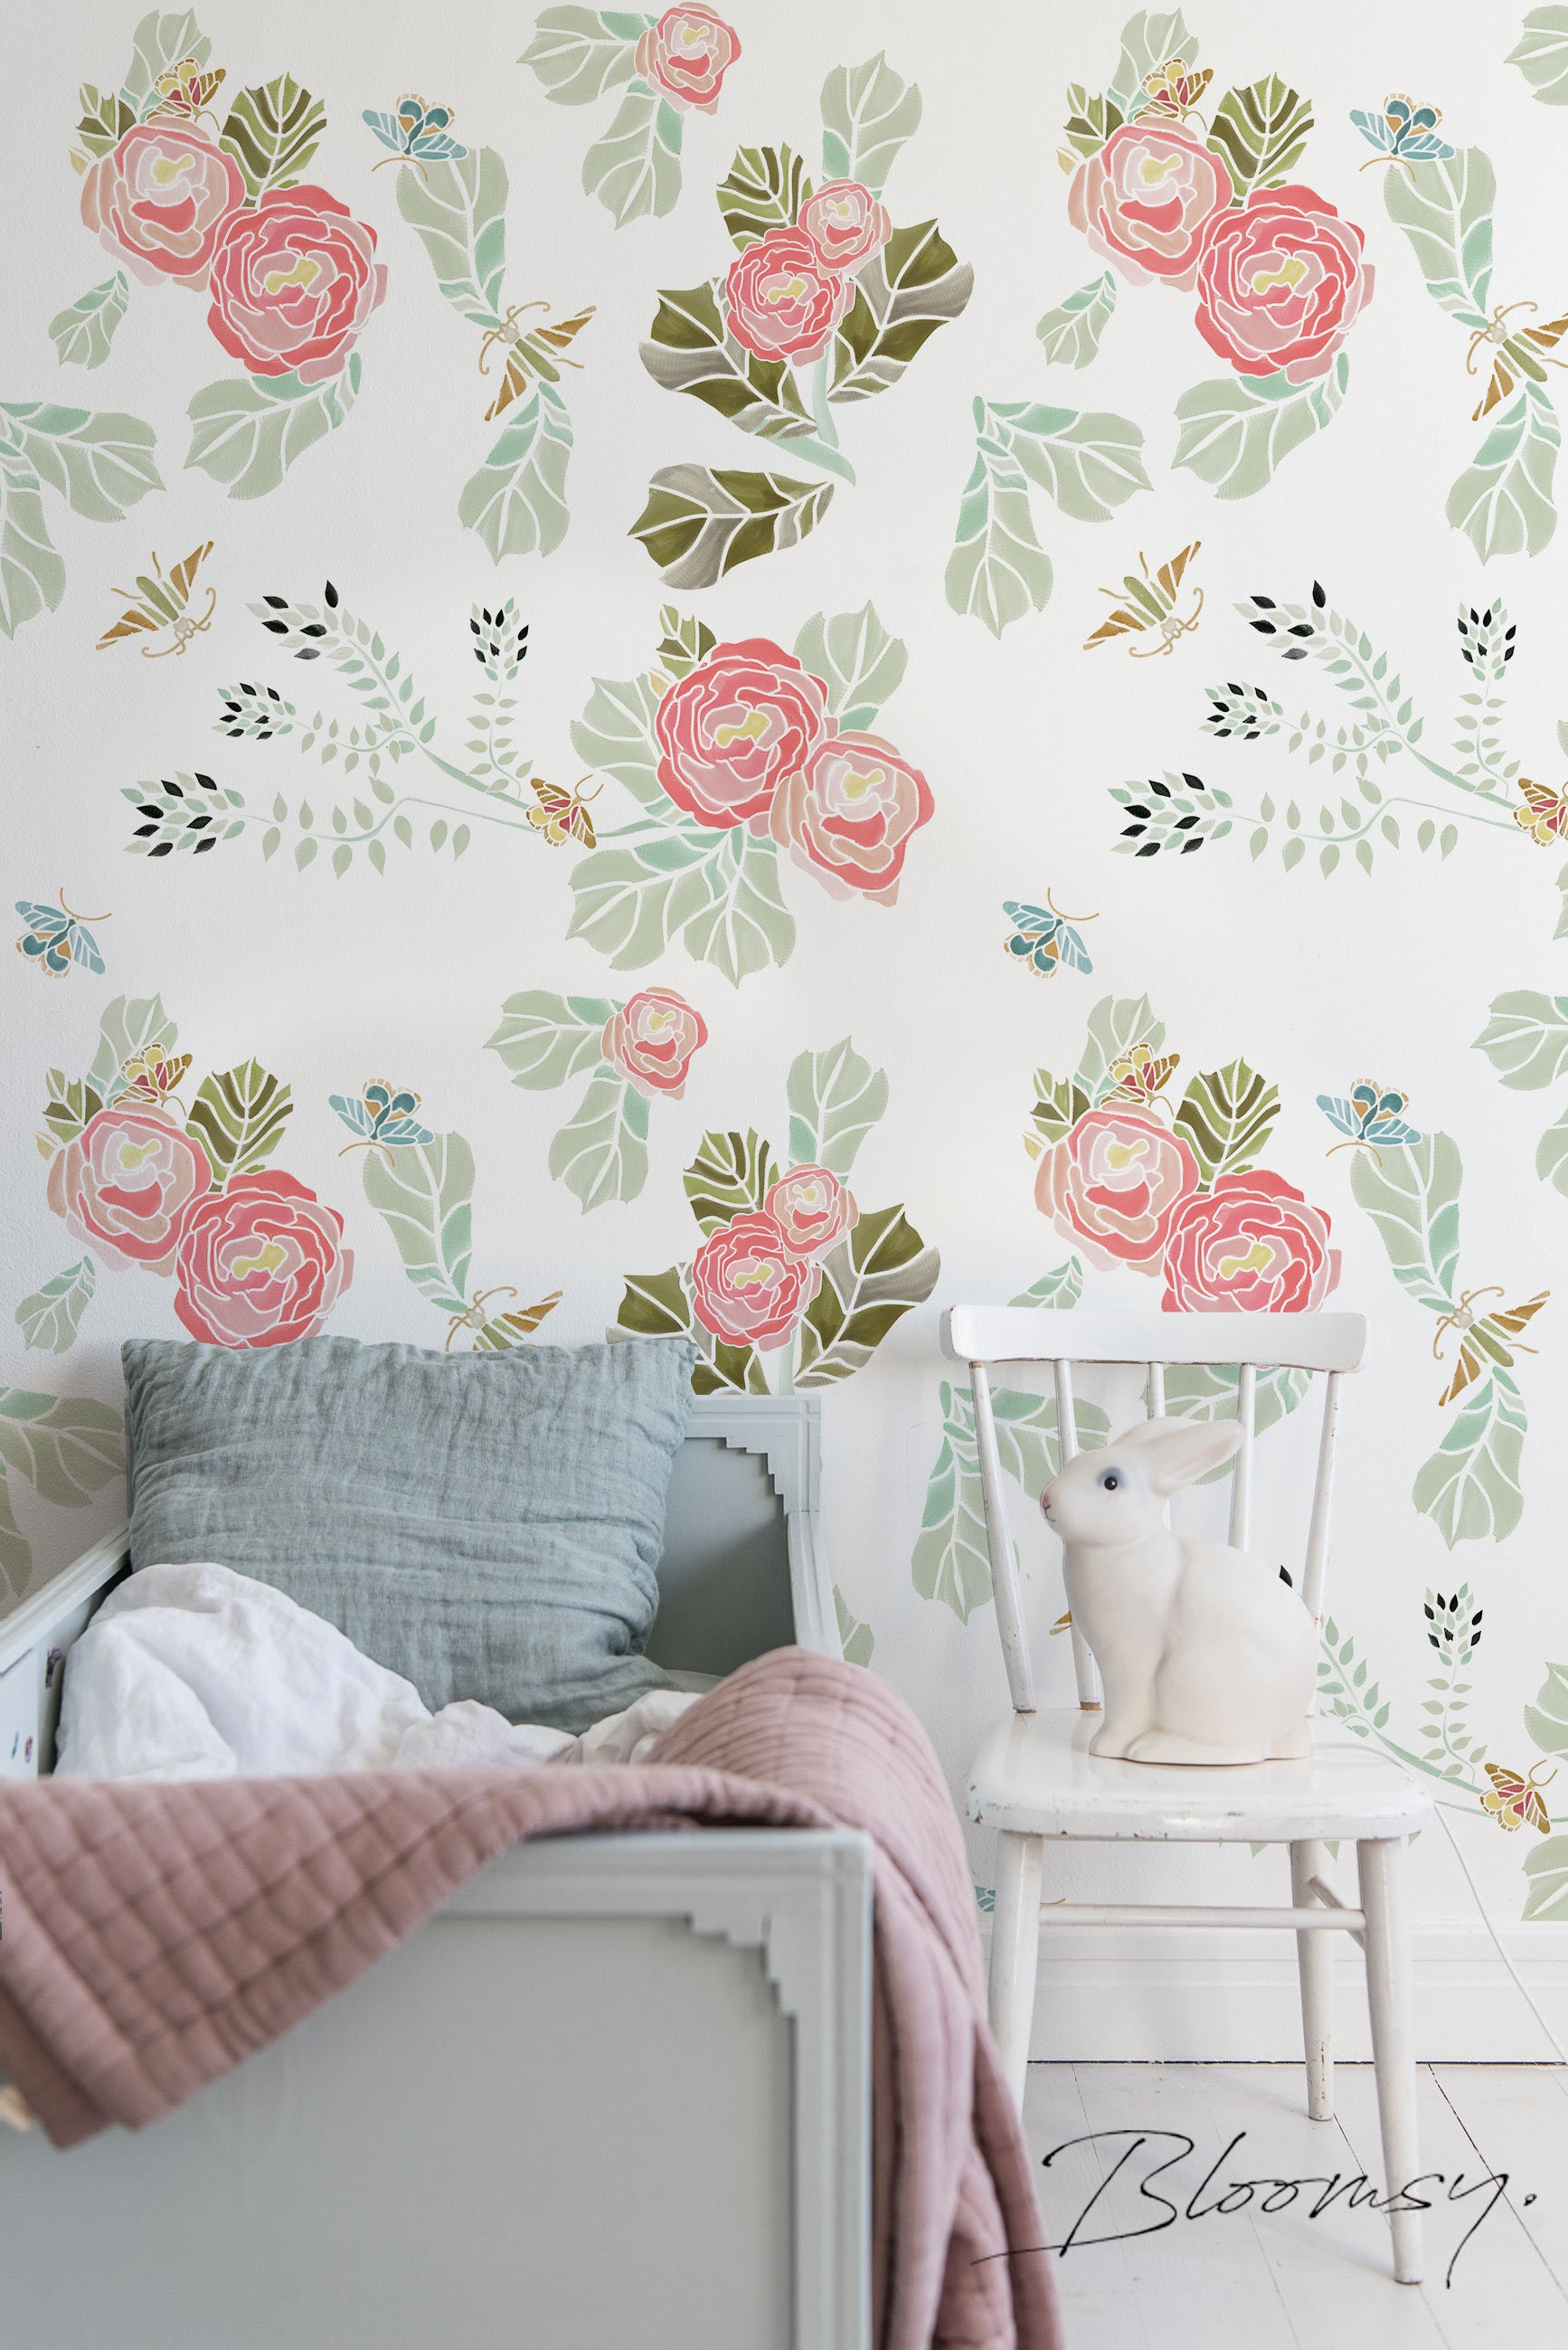 Removable Wallpaper Pastel Flowers With Butterflies Etsy